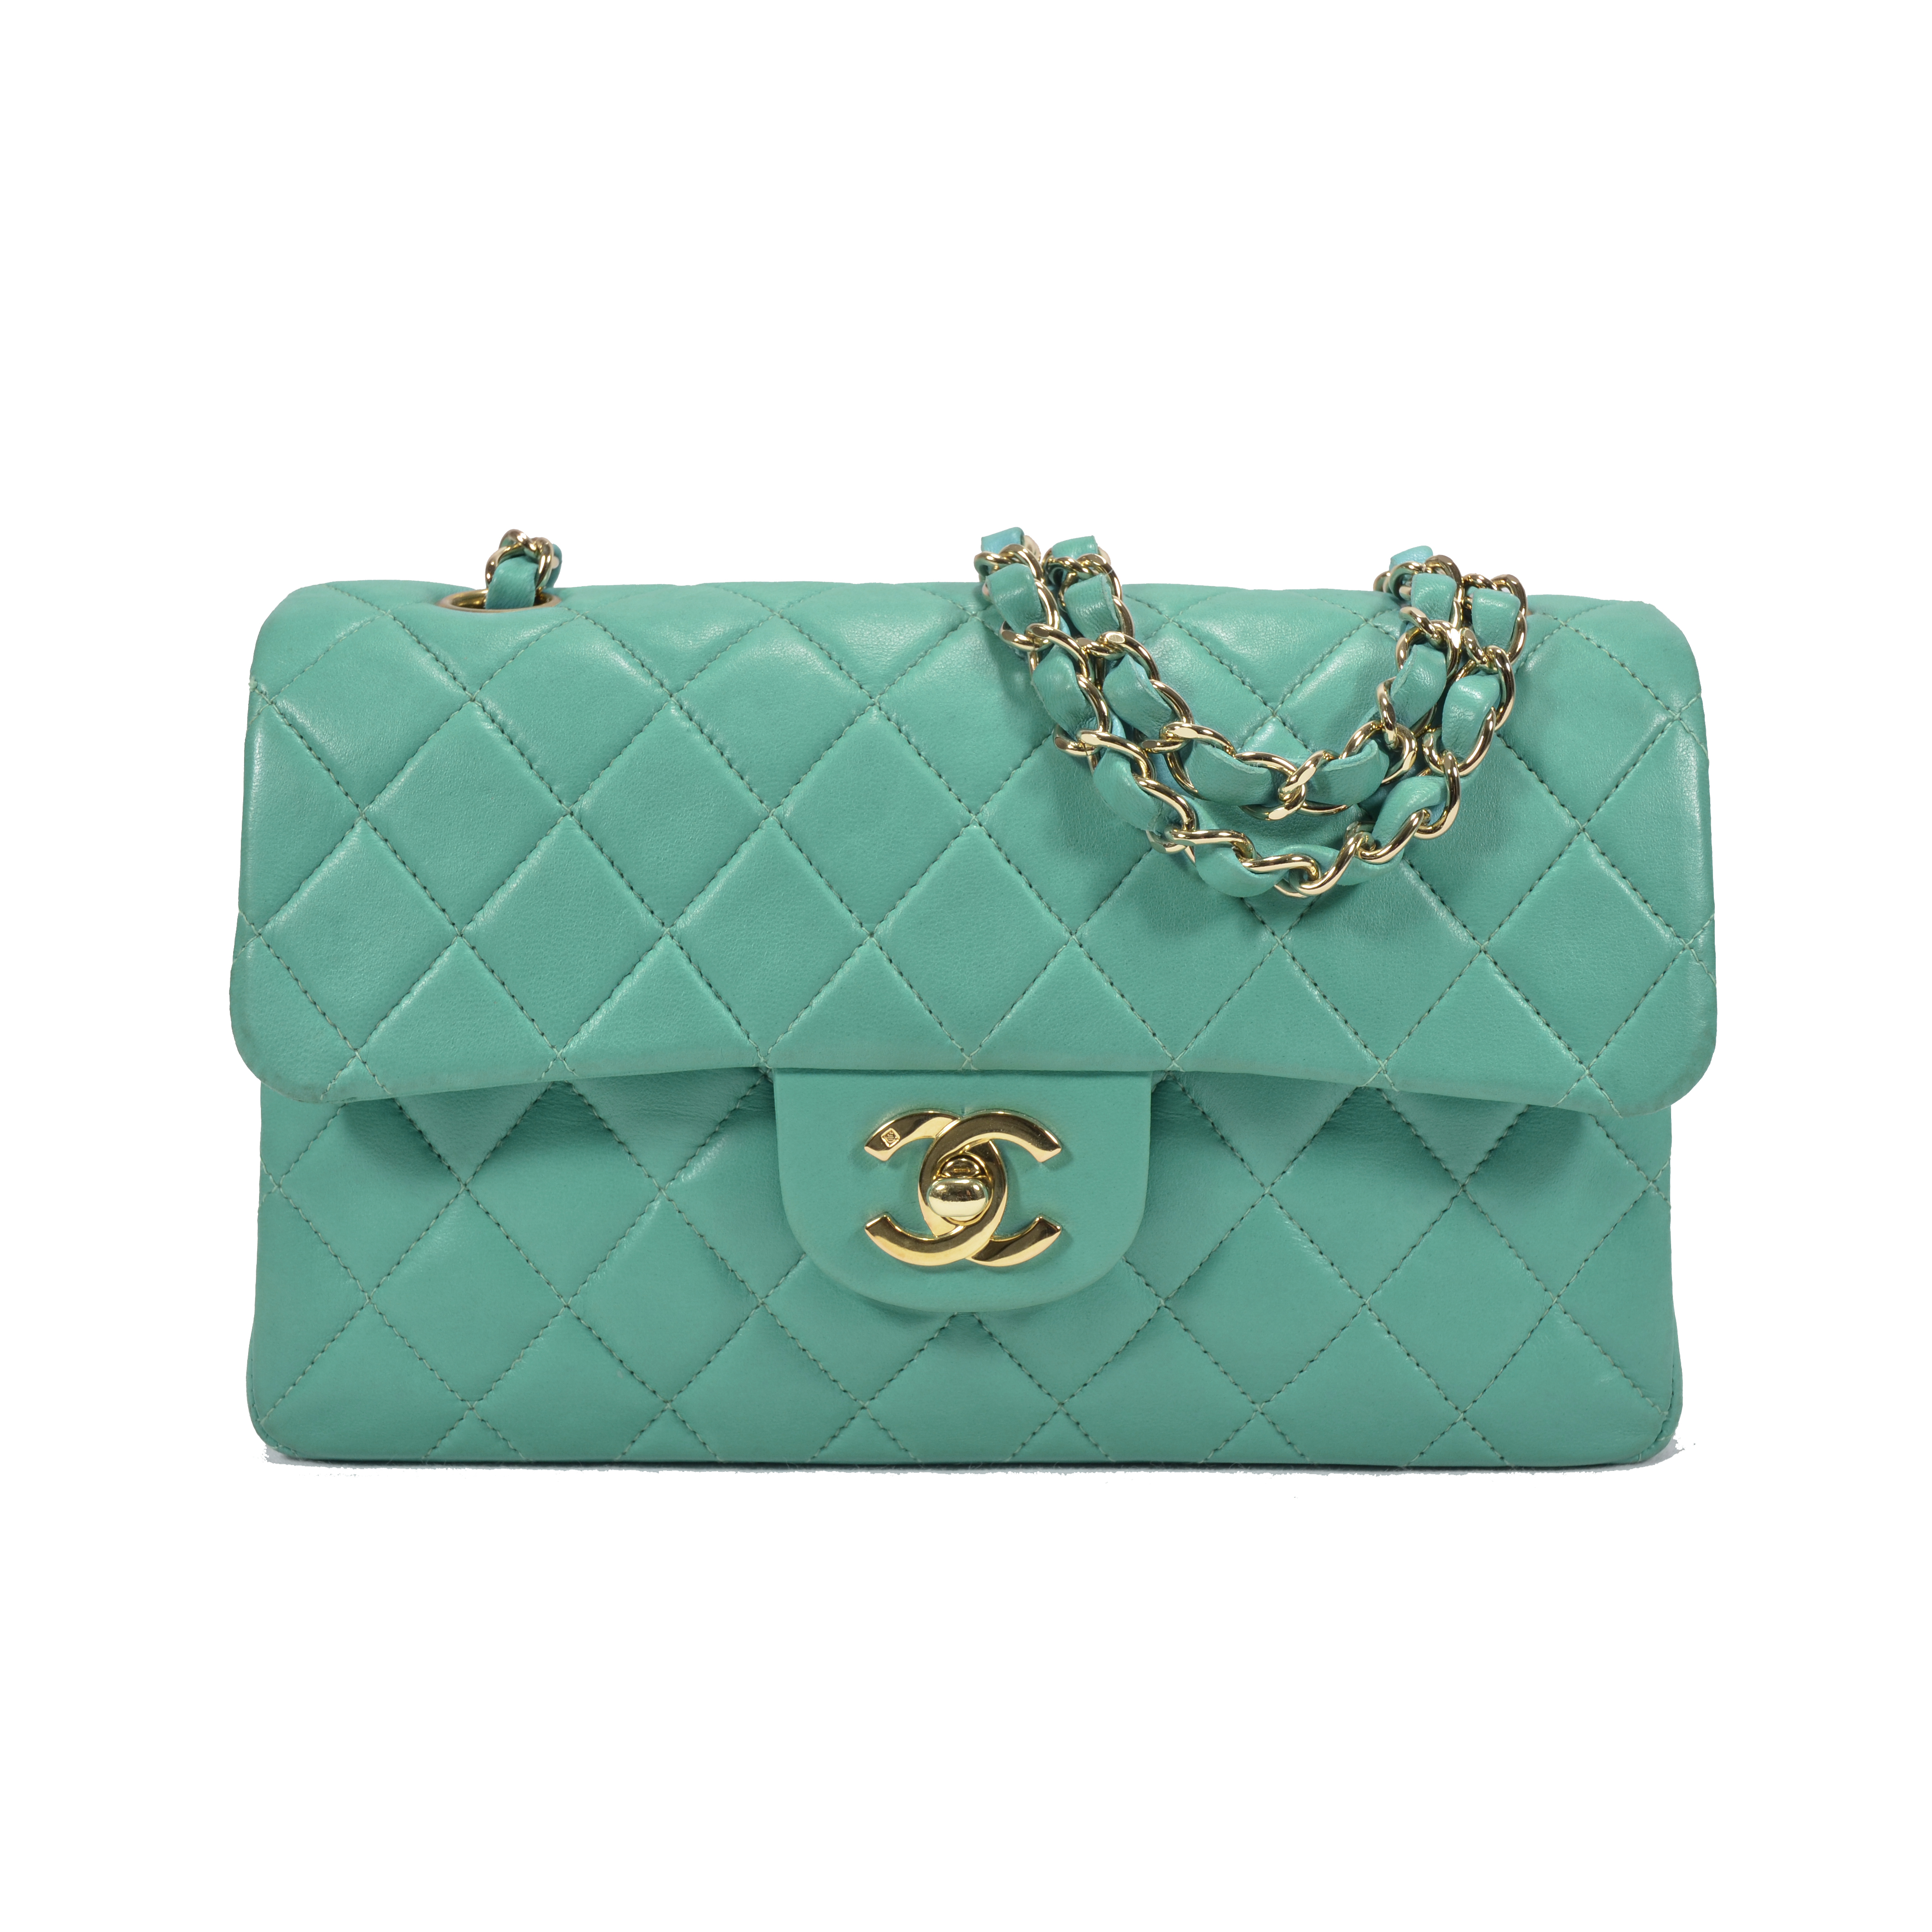 80cfd883da21 Authentic Second Hand Chanel Turquoise Classic Double Flap Bag  (PSS-051-00145)